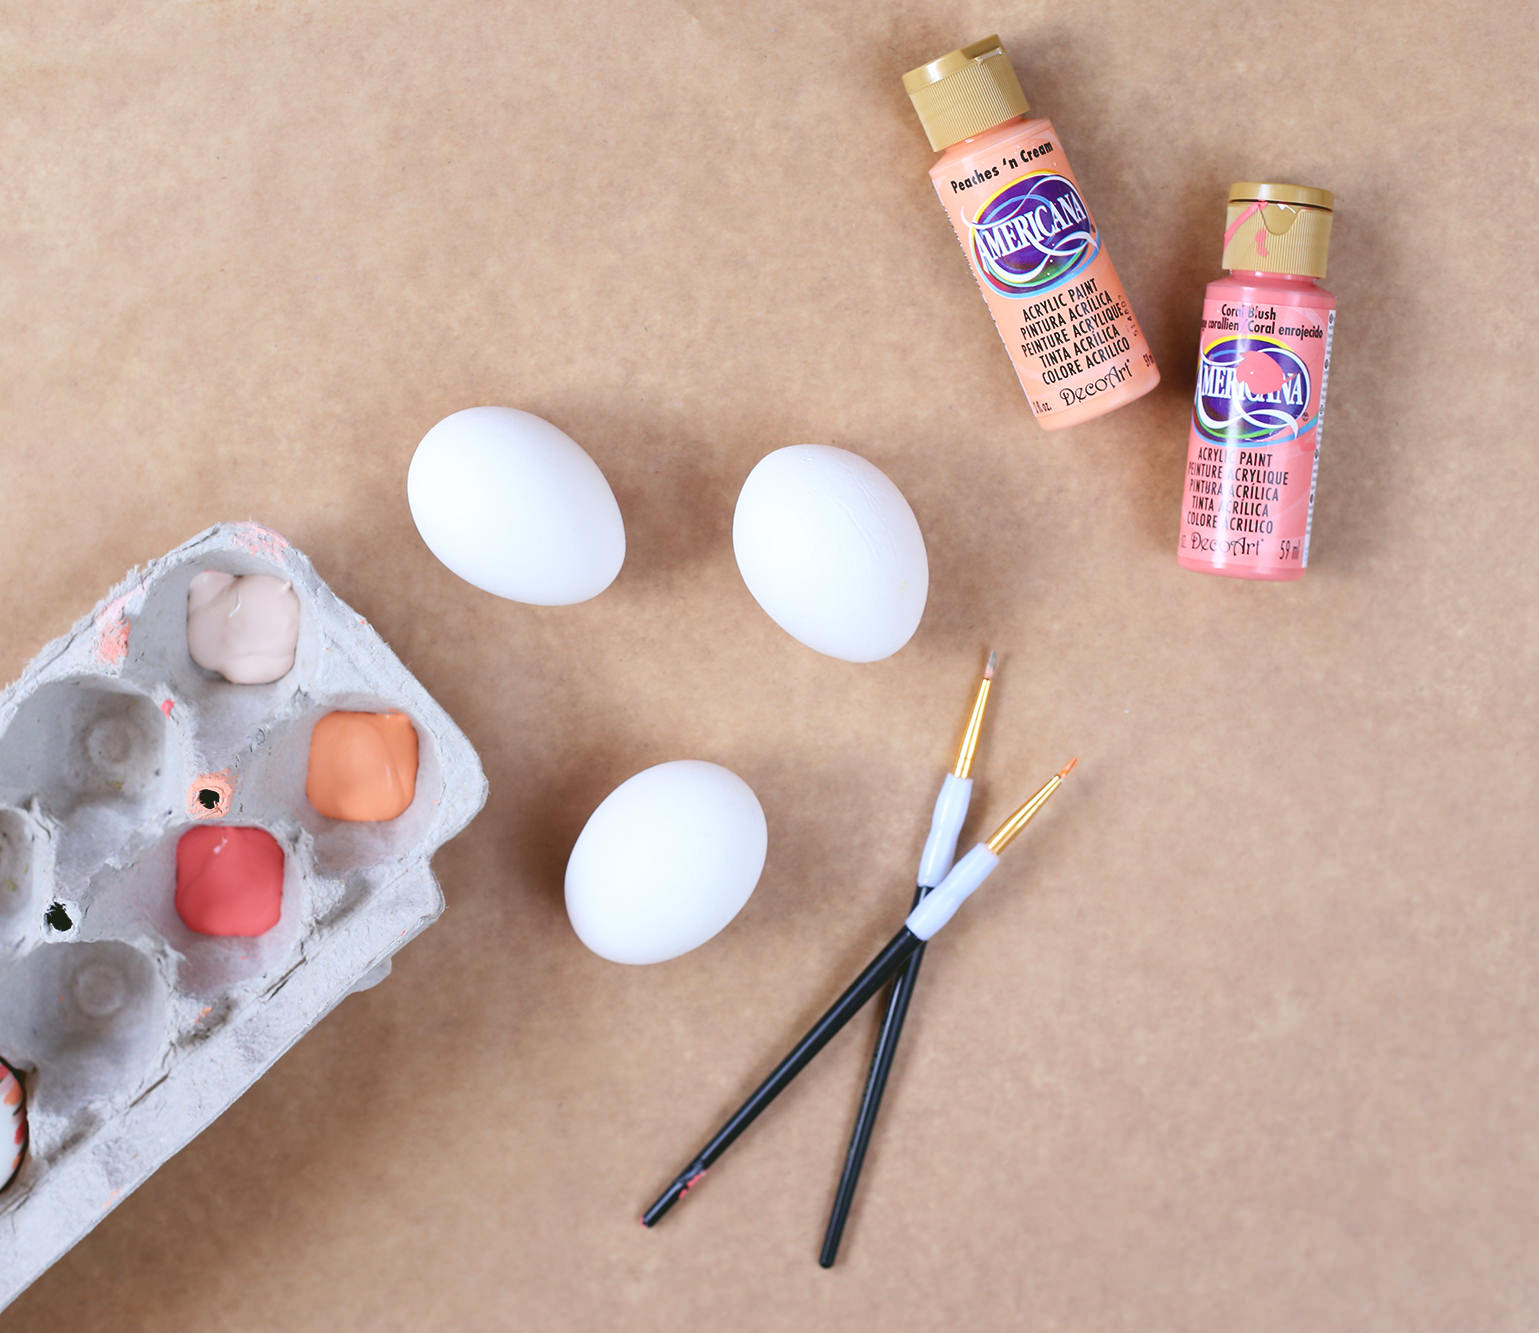 Coloring eggs doesn't have to be hard! DIY your own easter eggs with a few simple brushstrokes!